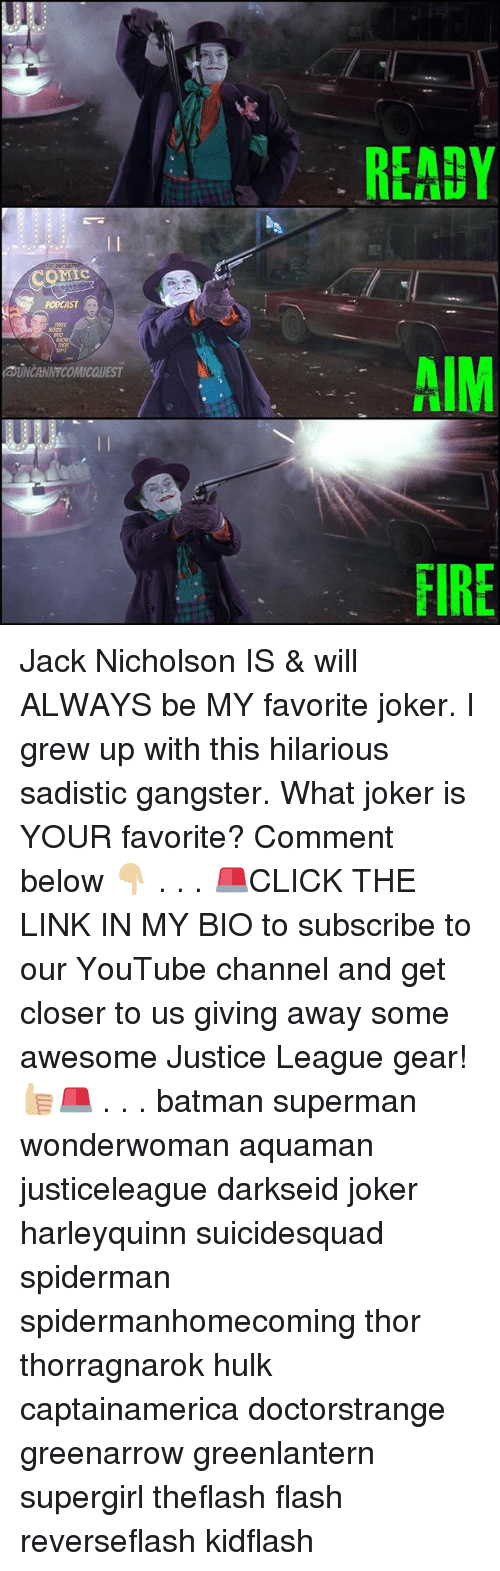 aime: OMIC  UNCANNYCOMICQUEST  READY  AIM  FIRE Jack Nicholson IS & will ALWAYS be MY favorite joker. I grew up with this hilarious sadistic gangster. What joker is YOUR favorite? Comment below 👇🏼 . . . 🚨CLICK THE LINK IN MY BIO to subscribe to our YouTube channel and get closer to us giving away some awesome Justice League gear!👍🏼🚨 . . . batman superman wonderwoman aquaman justiceleague darkseid joker harleyquinn suicidesquad spiderman spidermanhomecoming thor thorragnarok hulk captainamerica doctorstrange greenarrow greenlantern supergirl theflash flash reverseflash kidflash